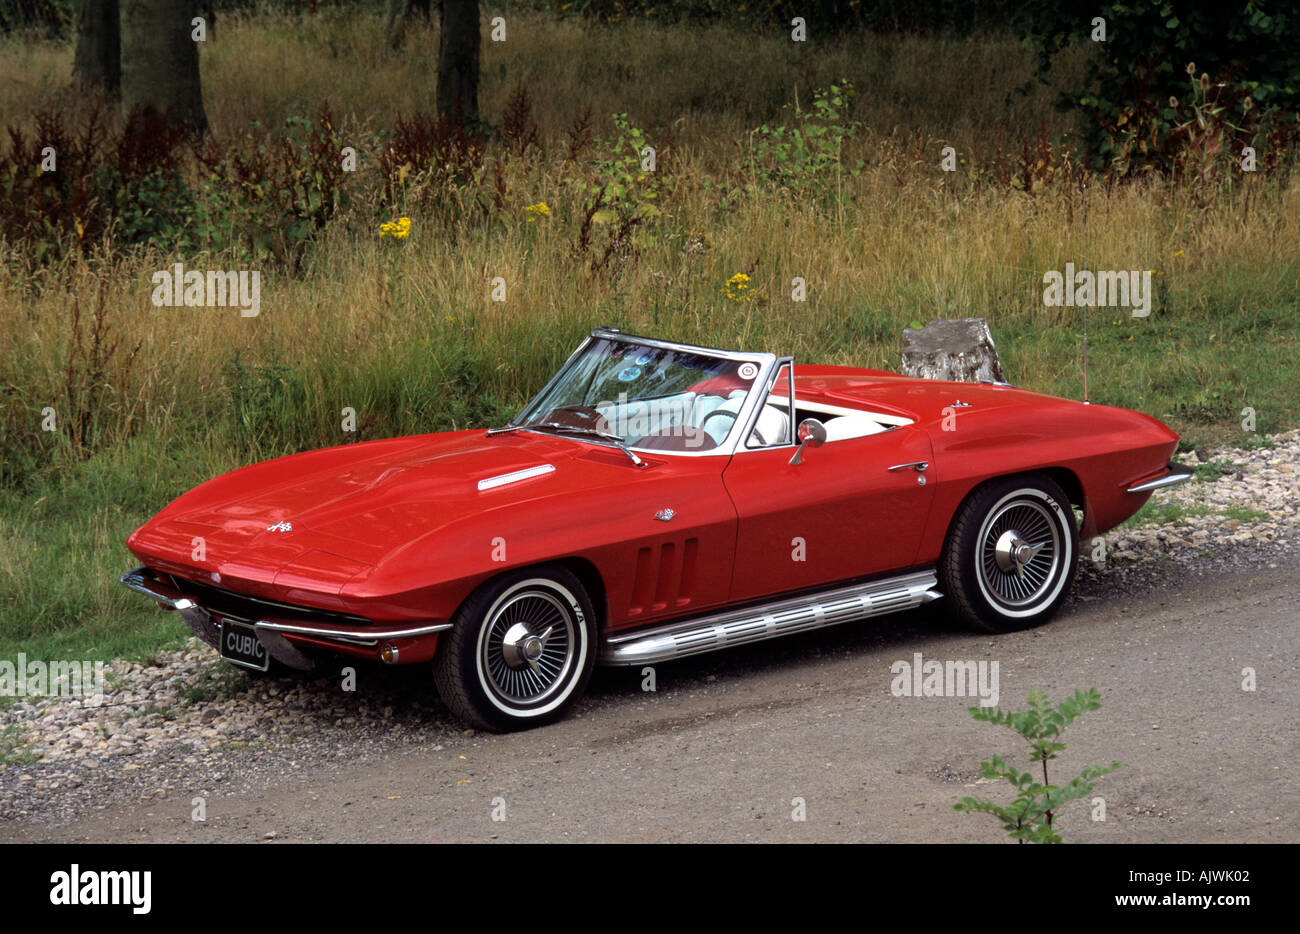 1963 Corvette Stingray >> Chevrolet Corvette Stingray Convertible 1963 to 1967. Keywords 1960s Stock Photo: 4837121 - Alamy